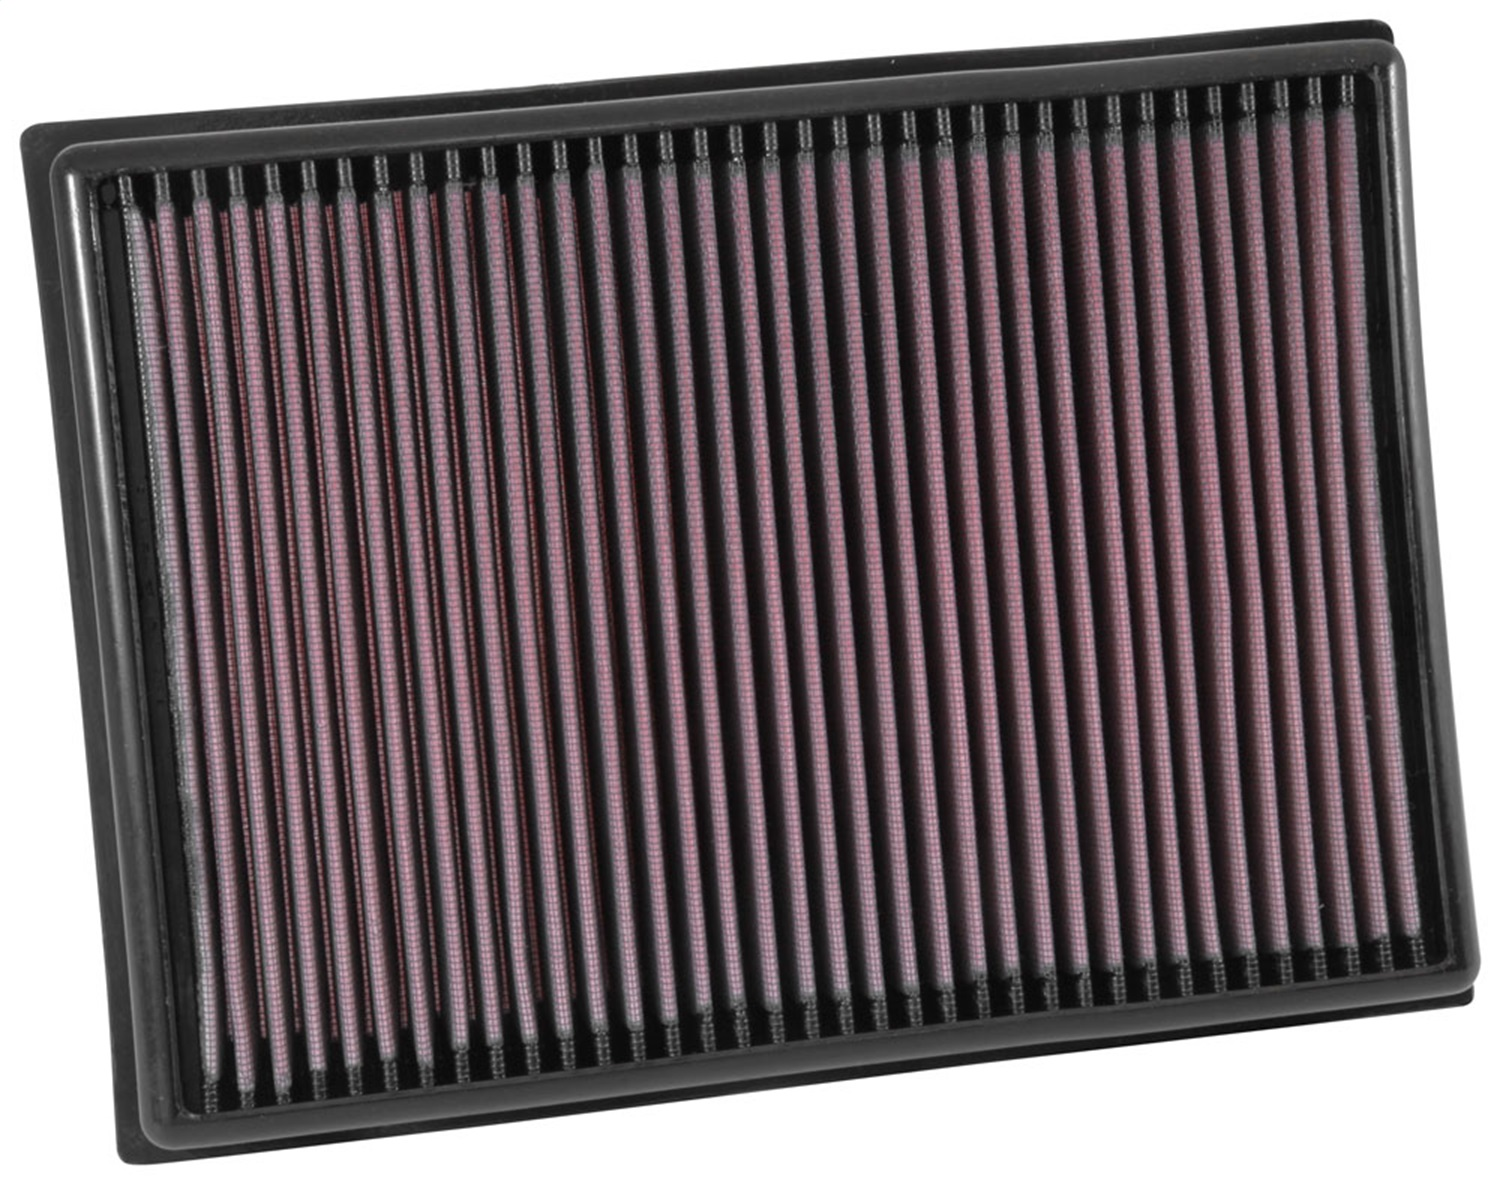 K&N Filters 33-2438 Air Filter Fits 10-15 4Runner FJ Cruiser GX460 33-2438